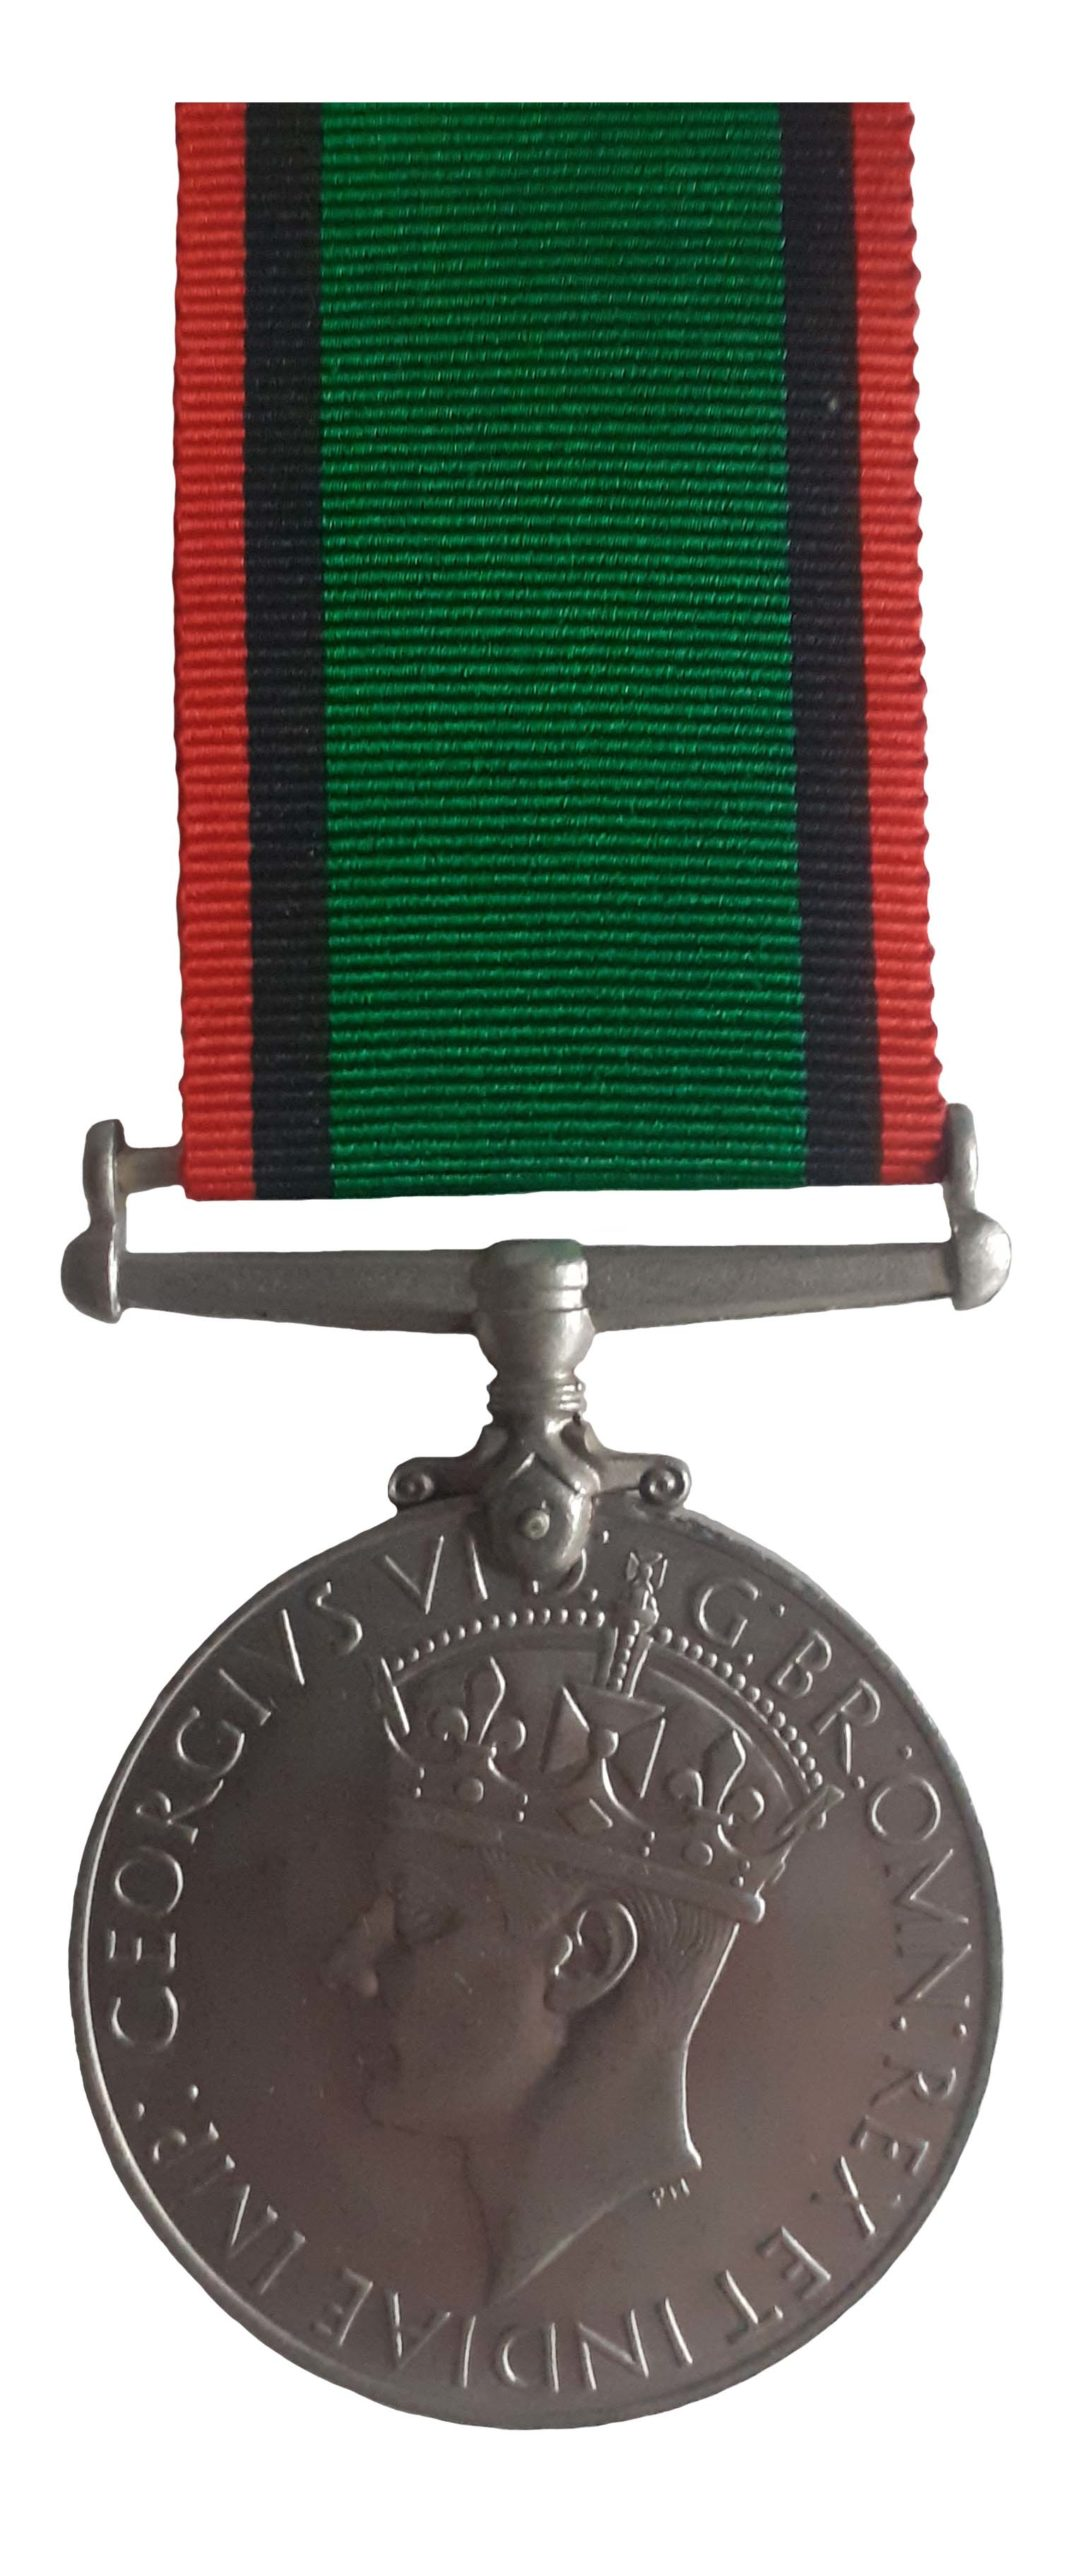 Southern Rhodesia Service Medal unnamed as issued